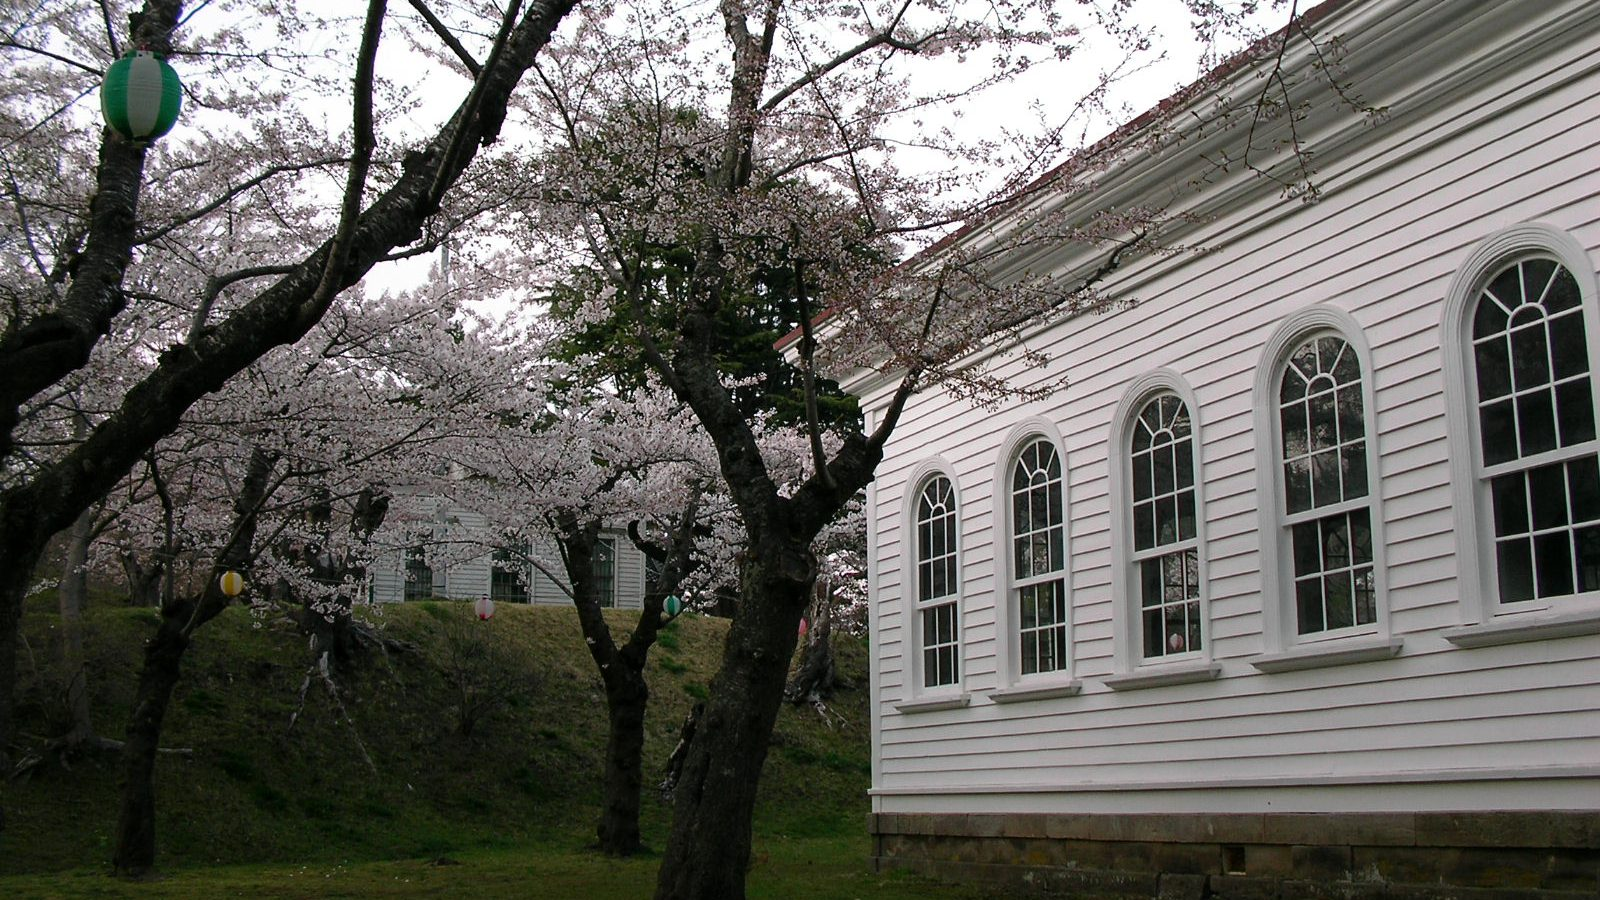 Hakodate's Varied Museums